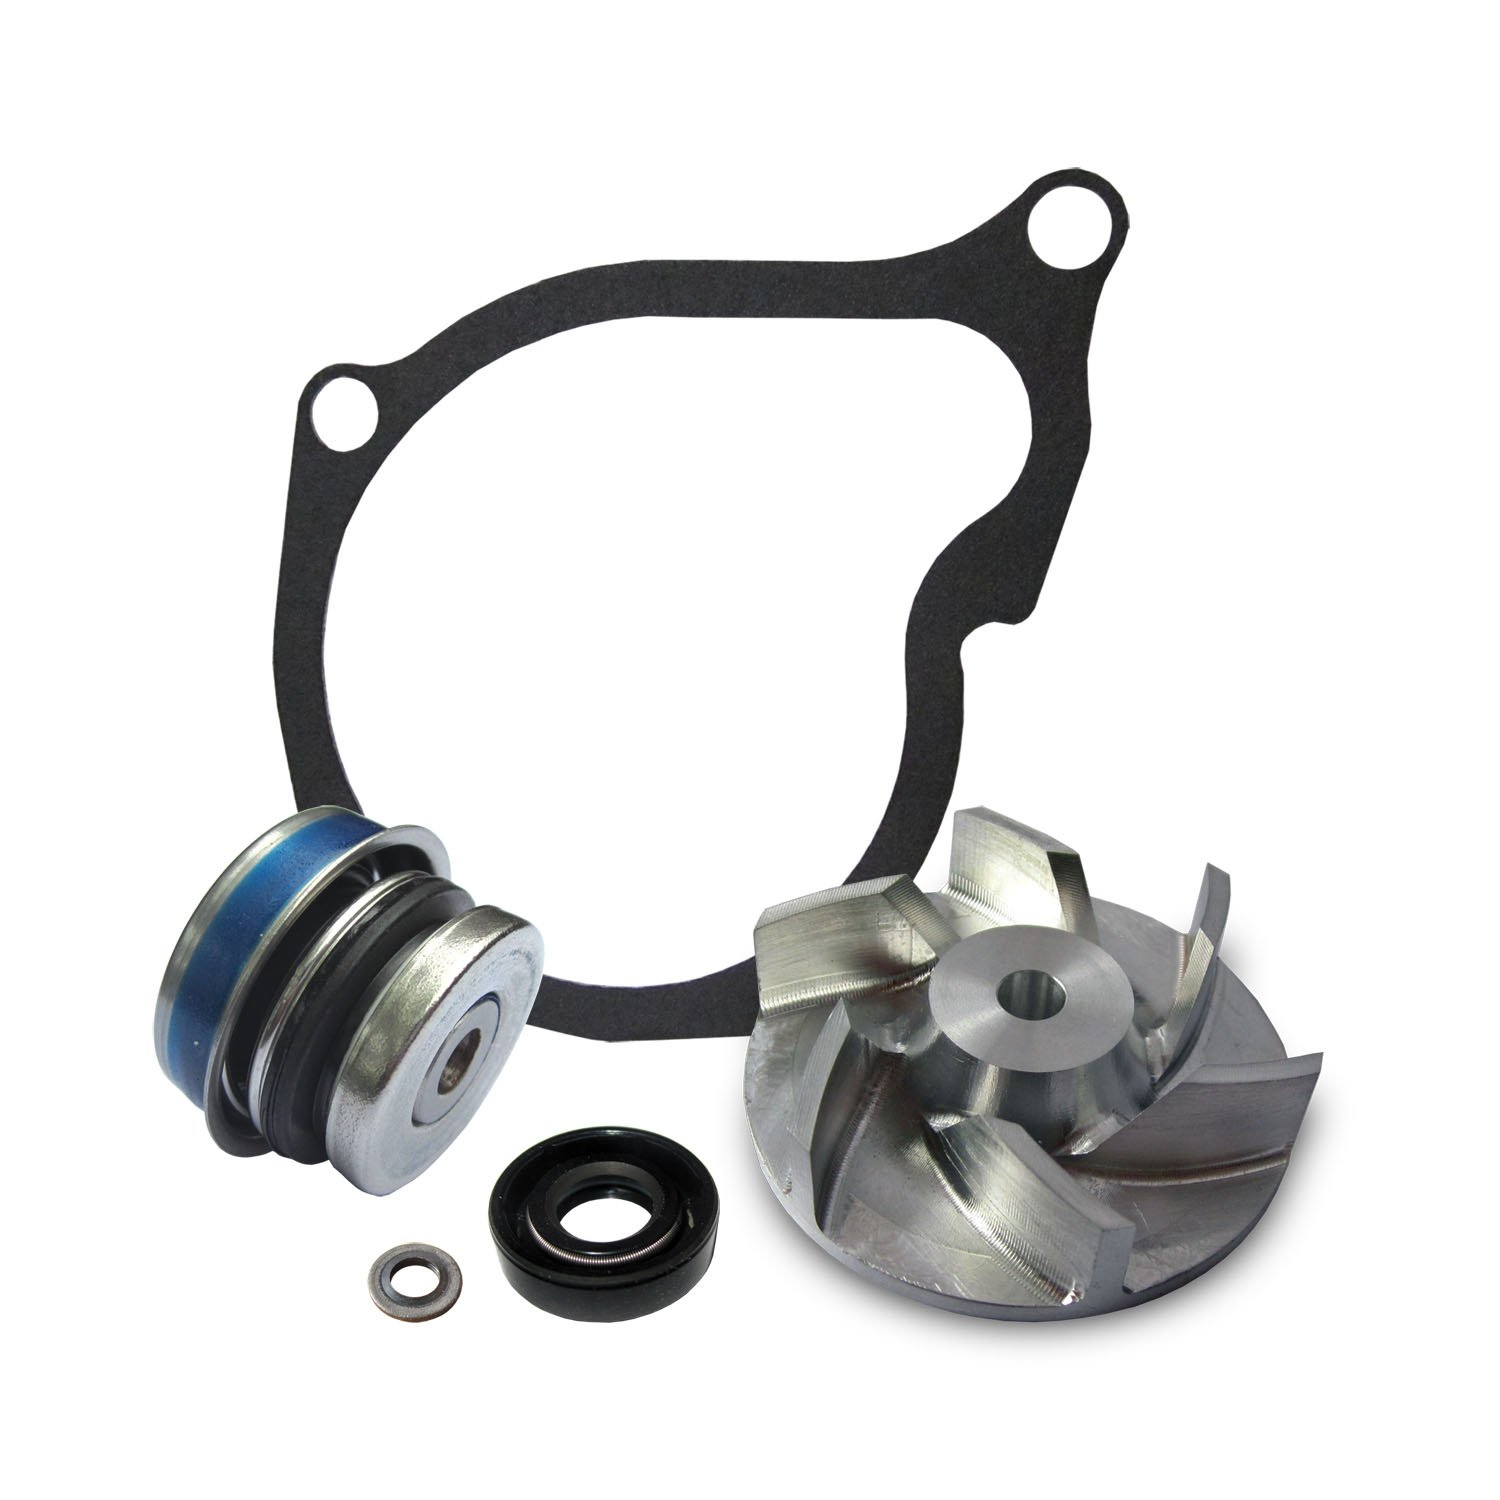 Polaris Sportsman 400 500 Water Pump Rebuild Kit with Billet Impeller квадрацикл peg perego с электрическим приводом polaris sportsman nero